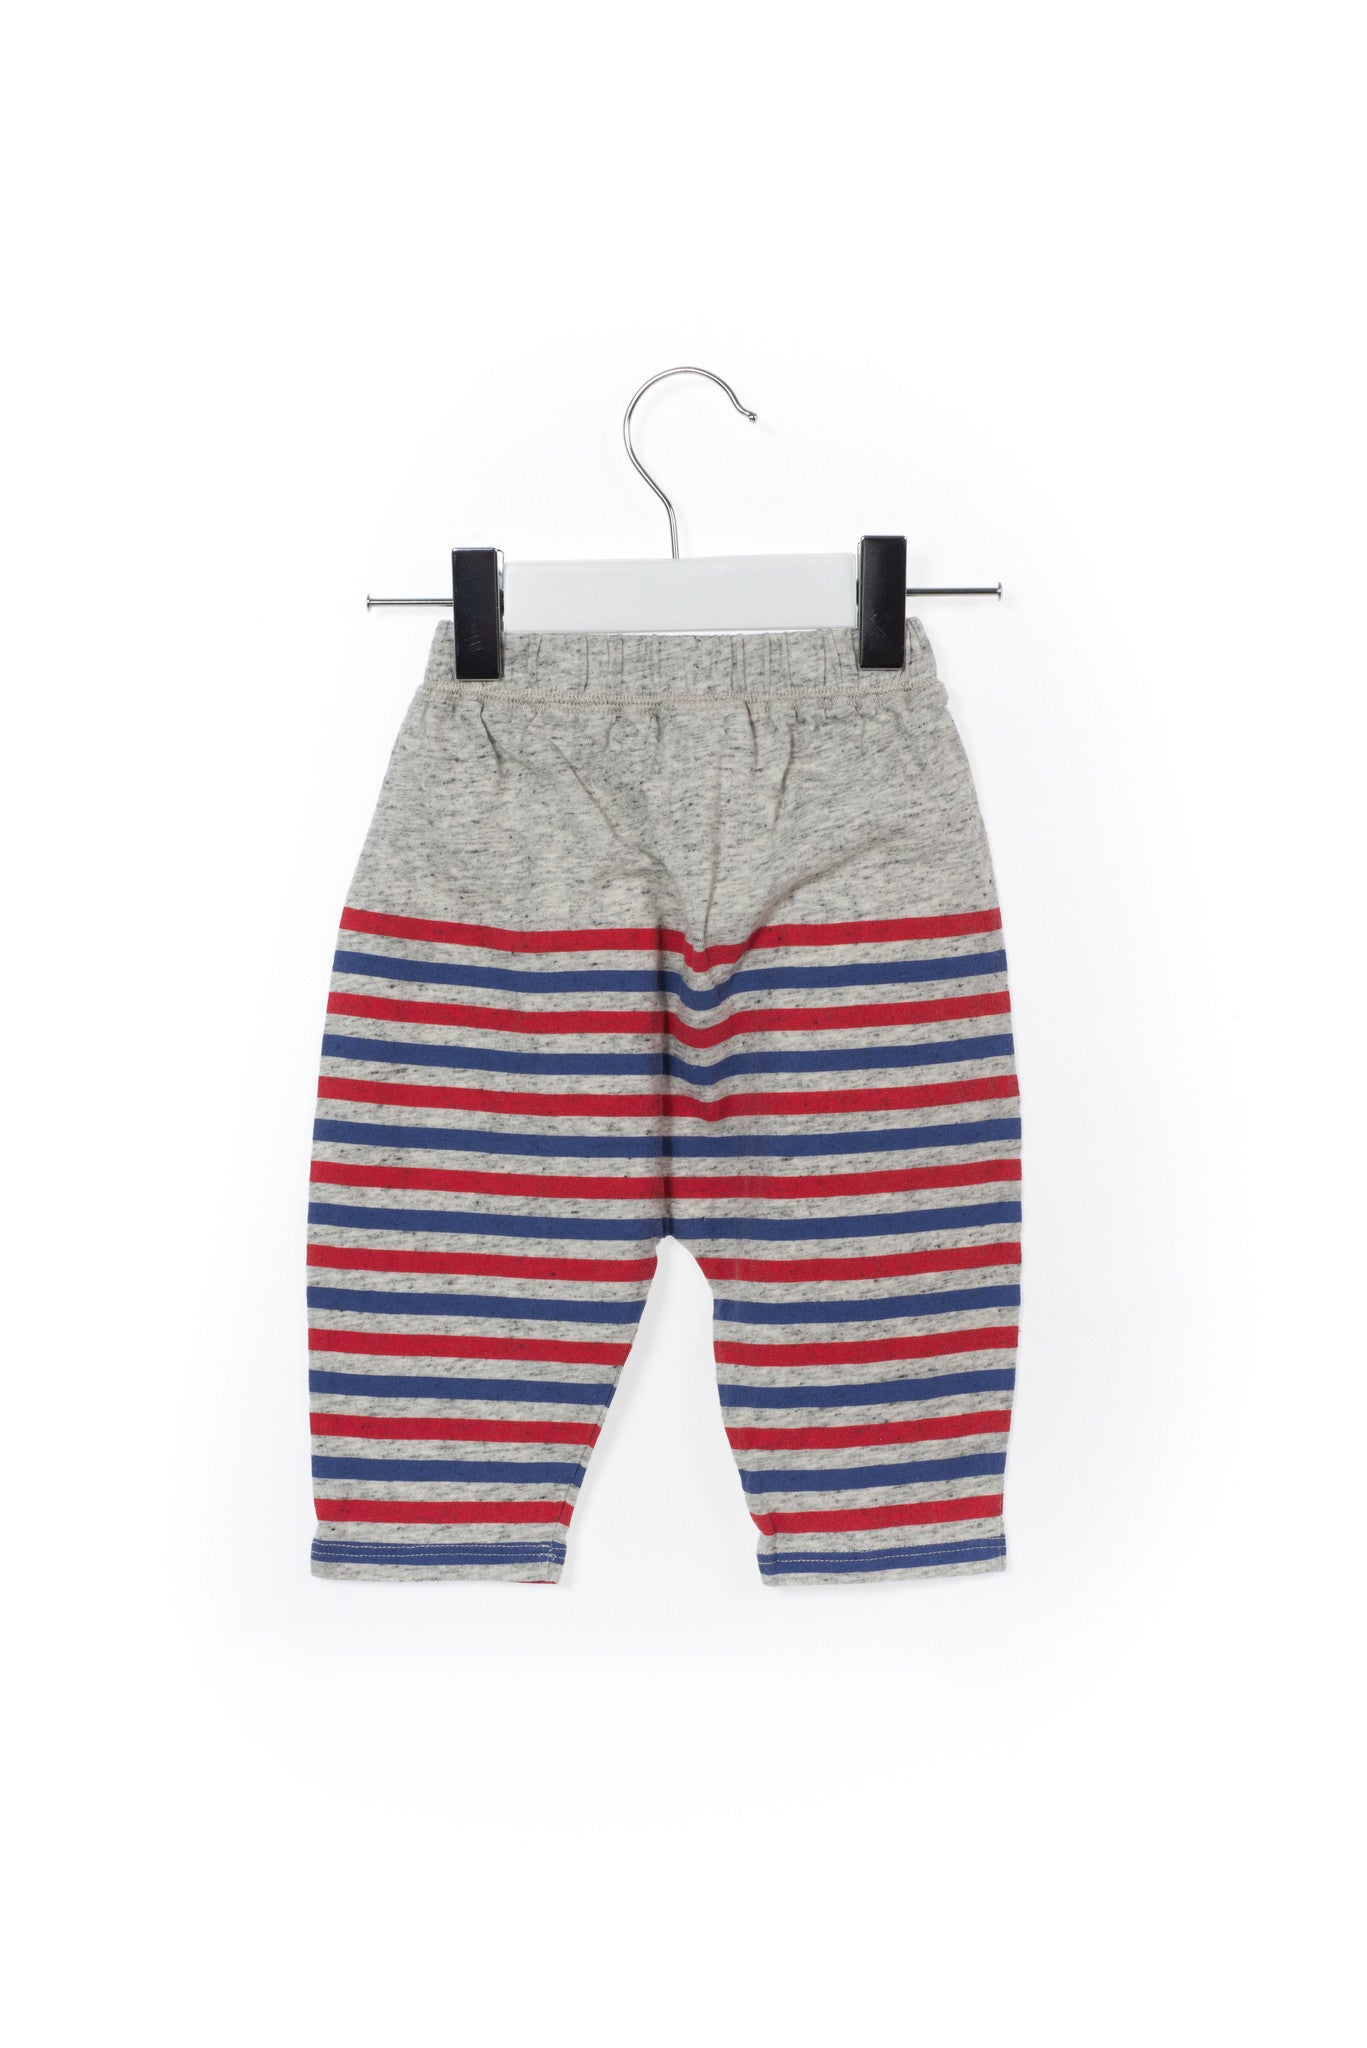 10001092 Seed Baby~Pants 3-6M at Retykle